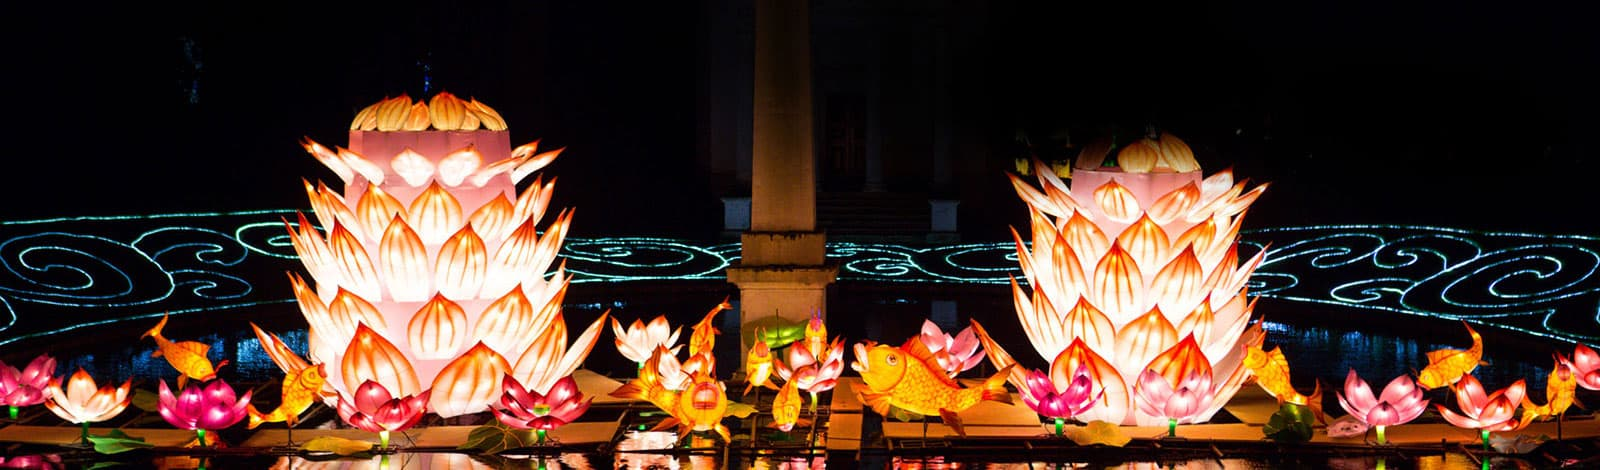 magical lantern festival event chiswick house gardens - Lightopia Chiswick House And Gardens 22 January